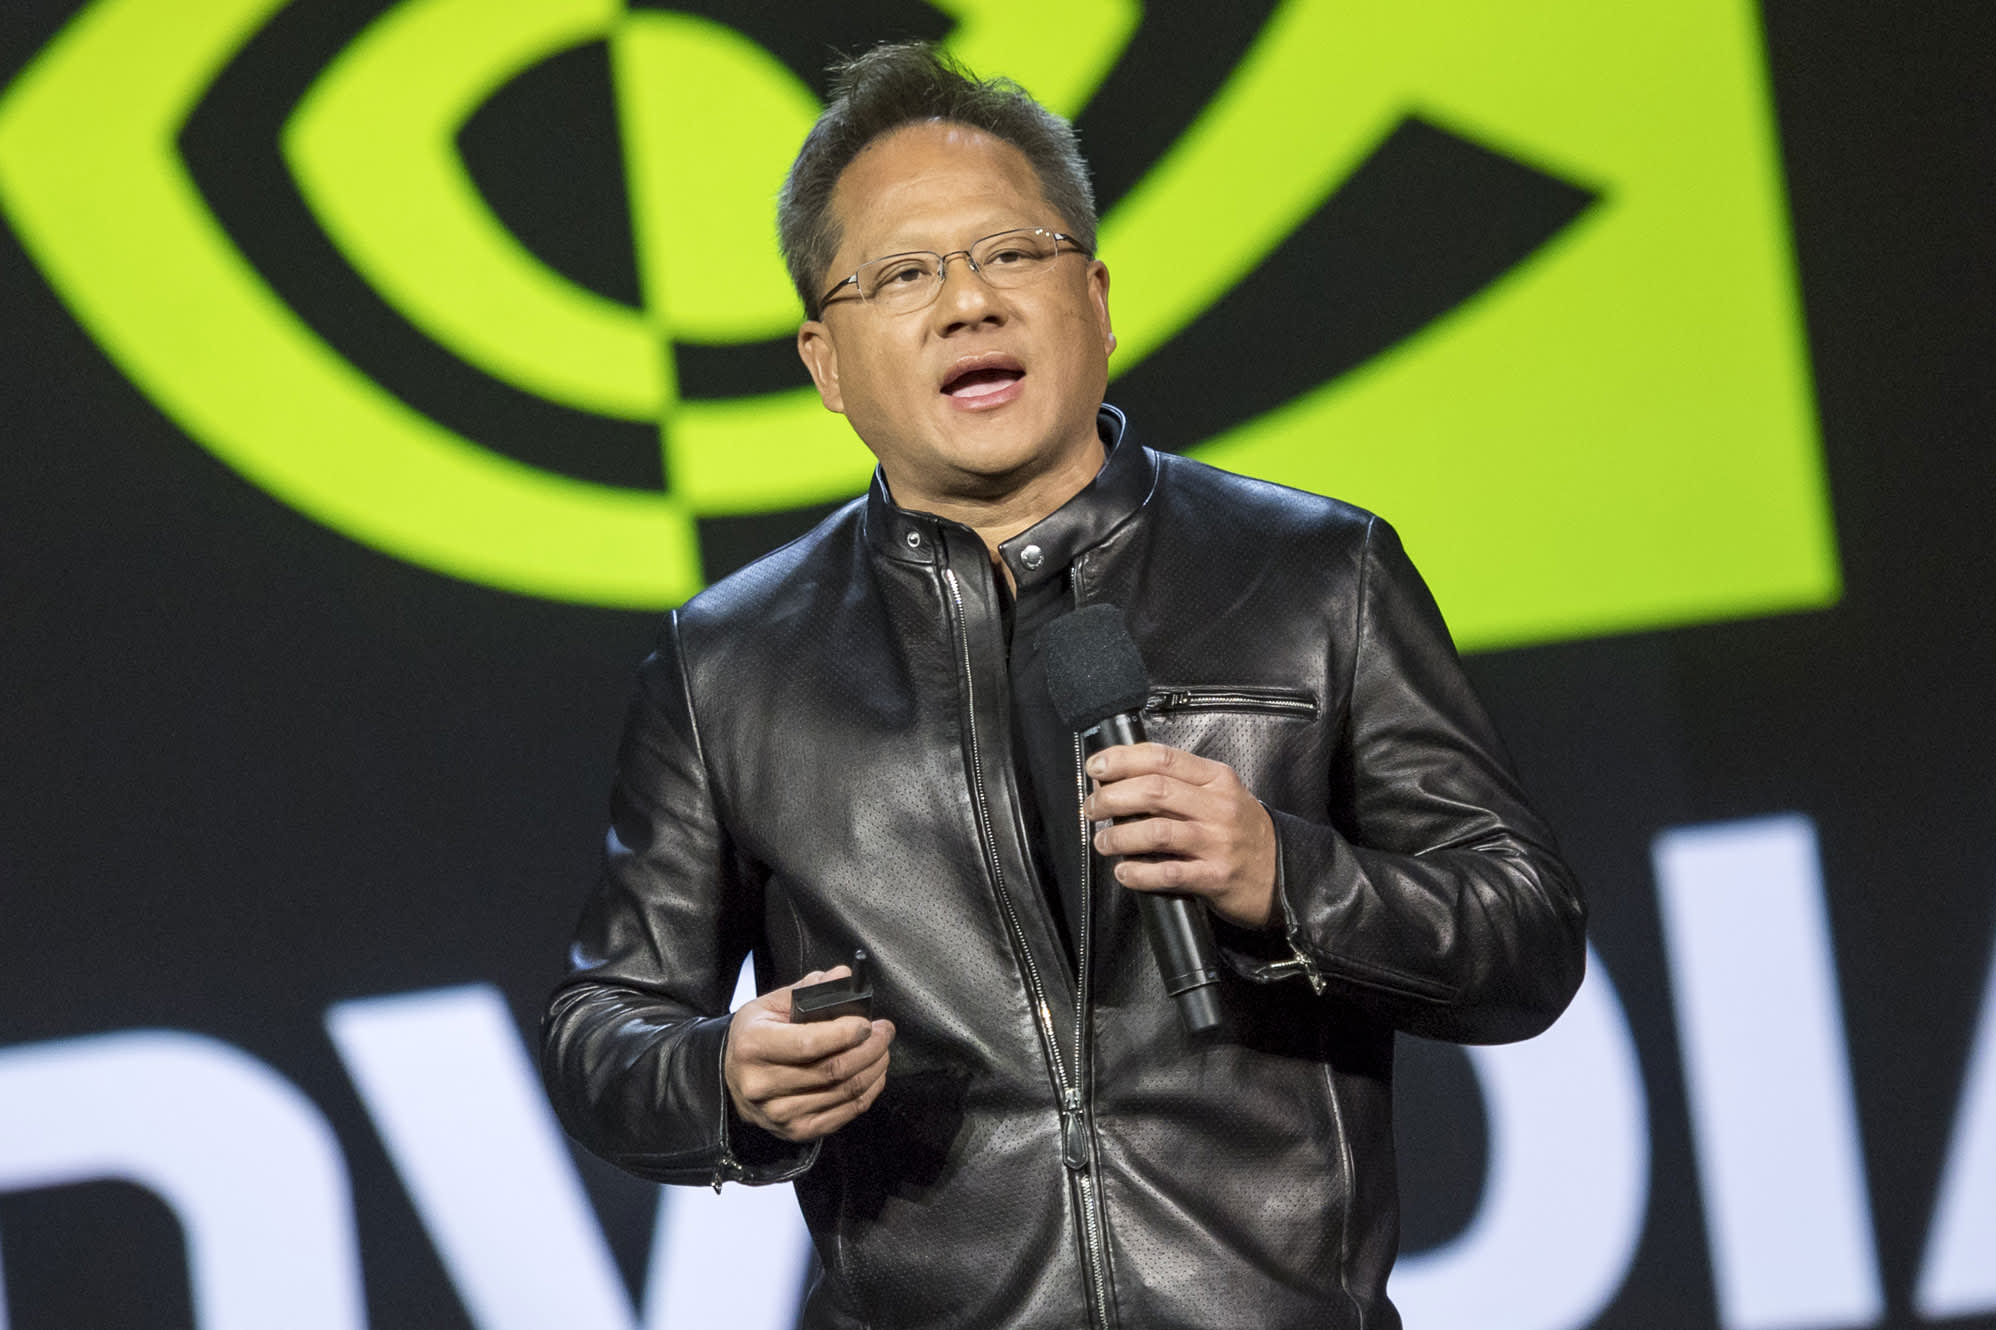 Stocks making the biggest moves after hours: Nvidia, Applied Materials and GE